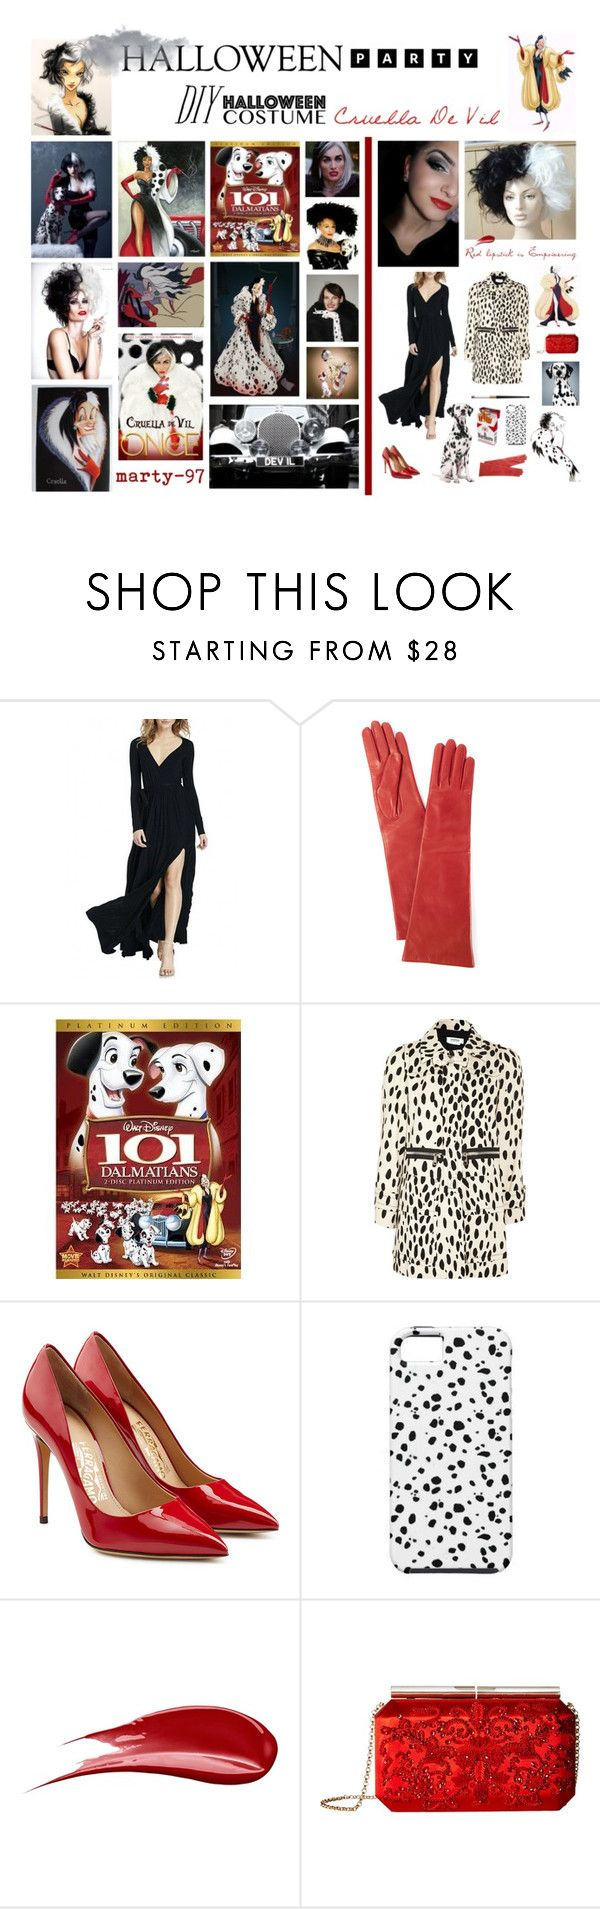 Halloween Party: Cruella De Vil by marty-97 on Polyvore featuring moda, WithChic, Sonia by Sonia Rykiel, Salvatore Ferragamo, Oscar de la Renta, Portolano, Hourglass Cosmetics, Edition, Disney and Once Upon a Time